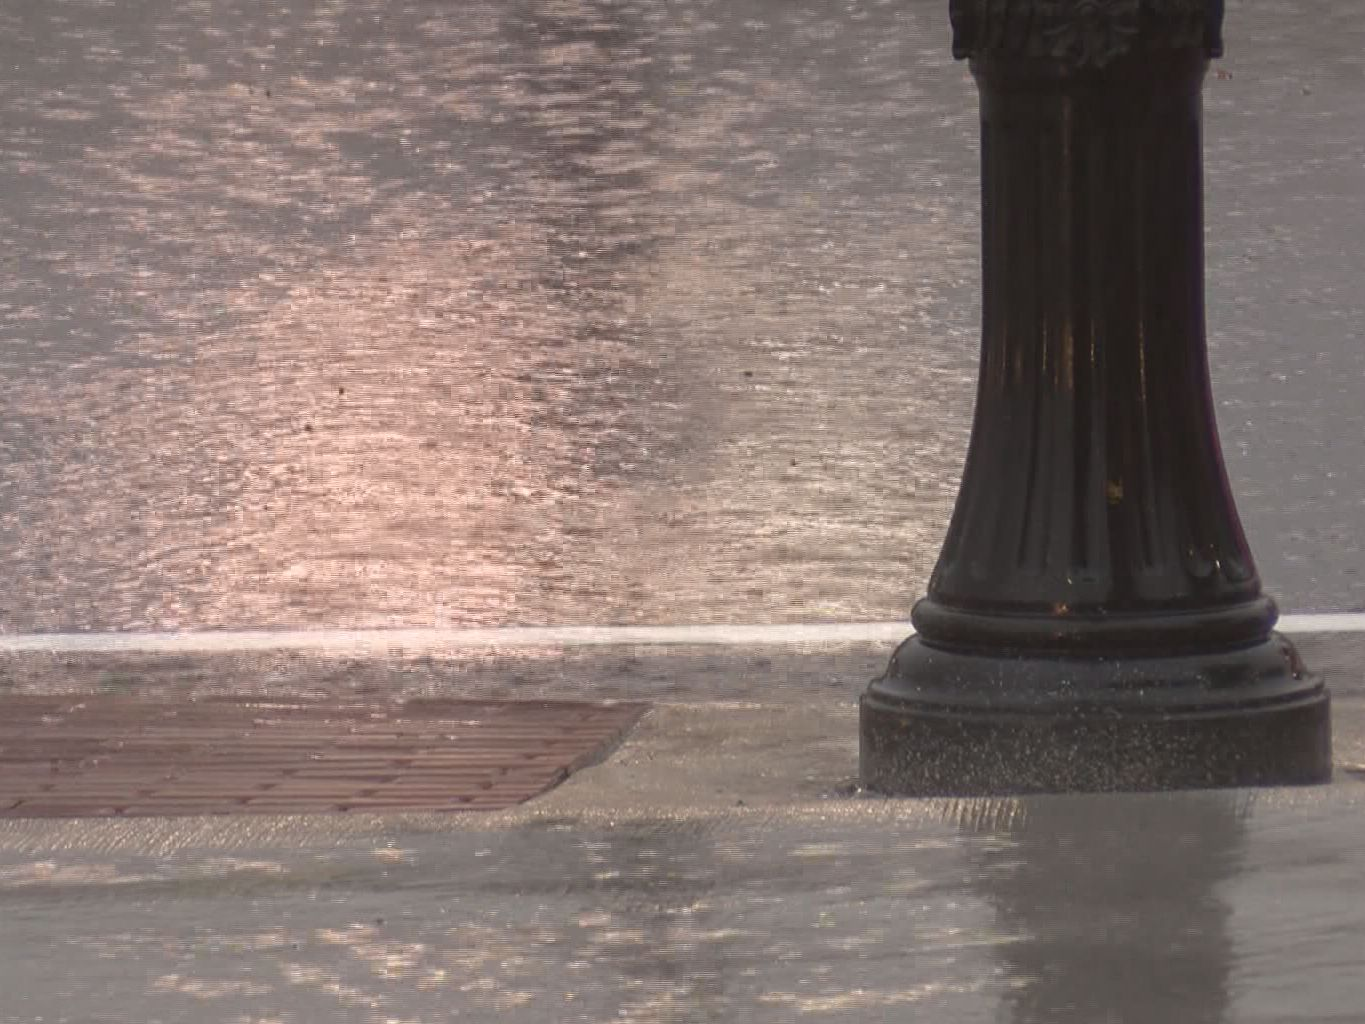 Friday's rainfall brings both positive and negative effects to the Panhandle